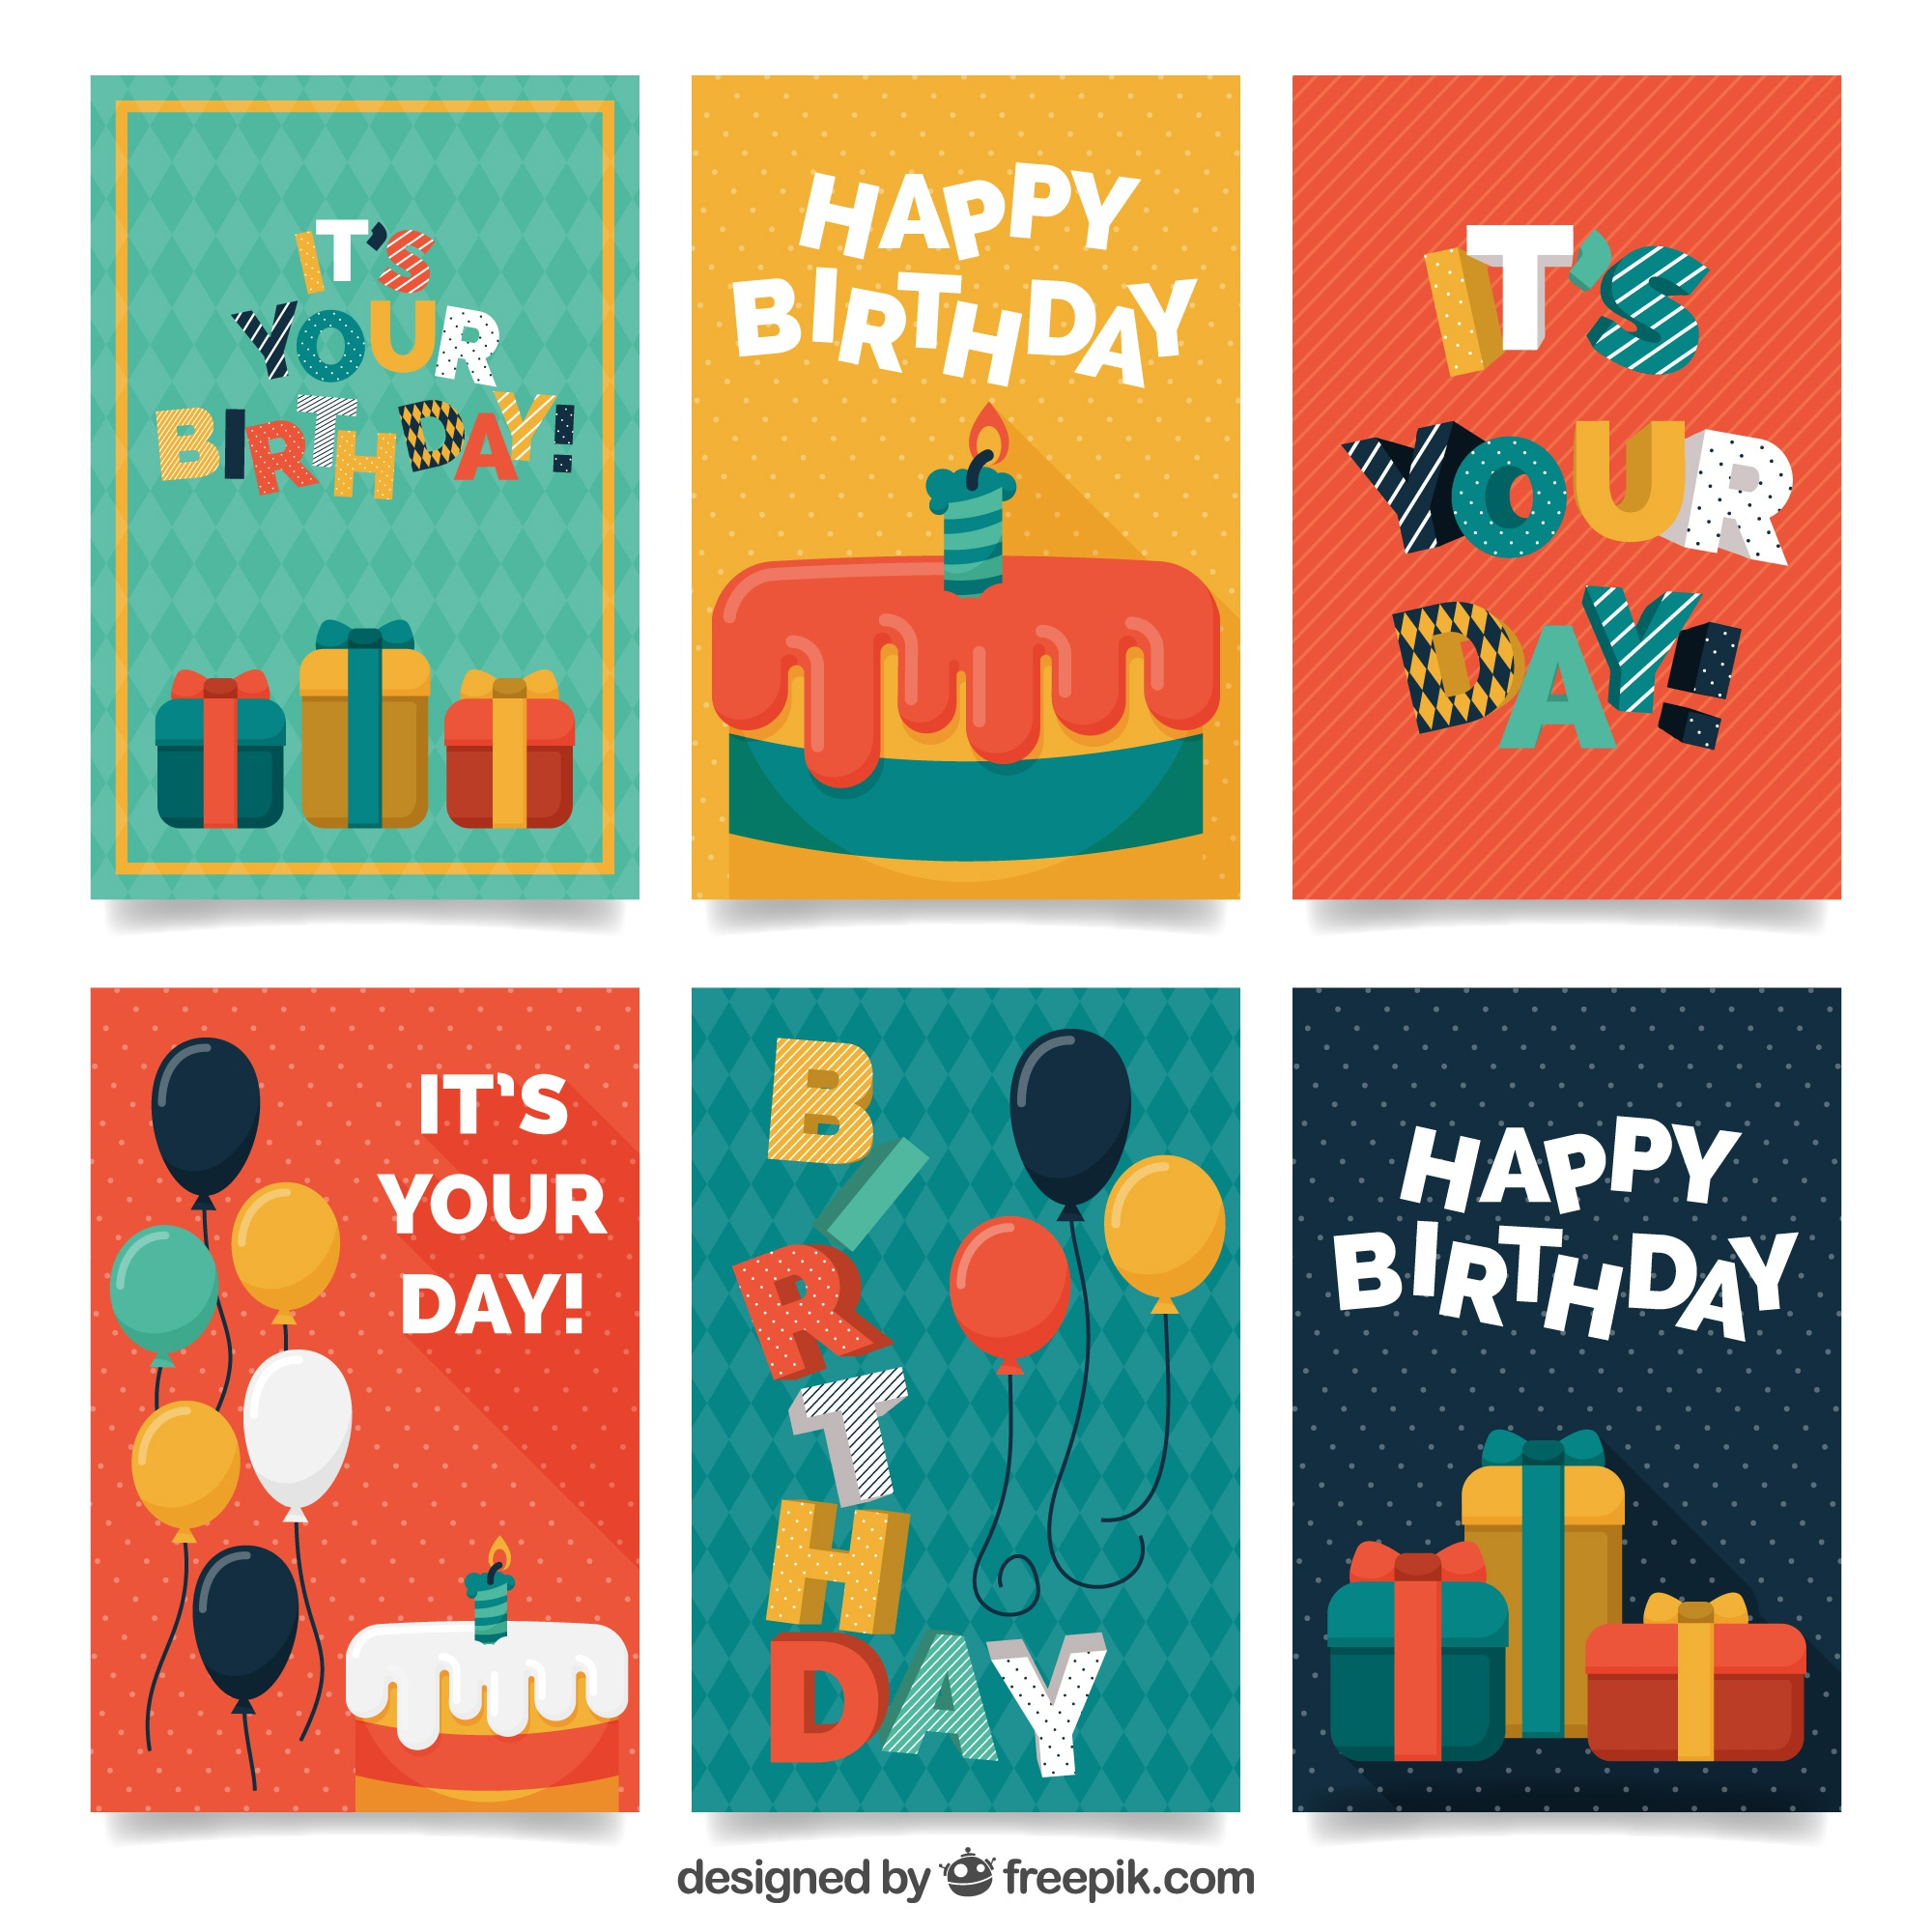 Colorful retro birthday greeting collection